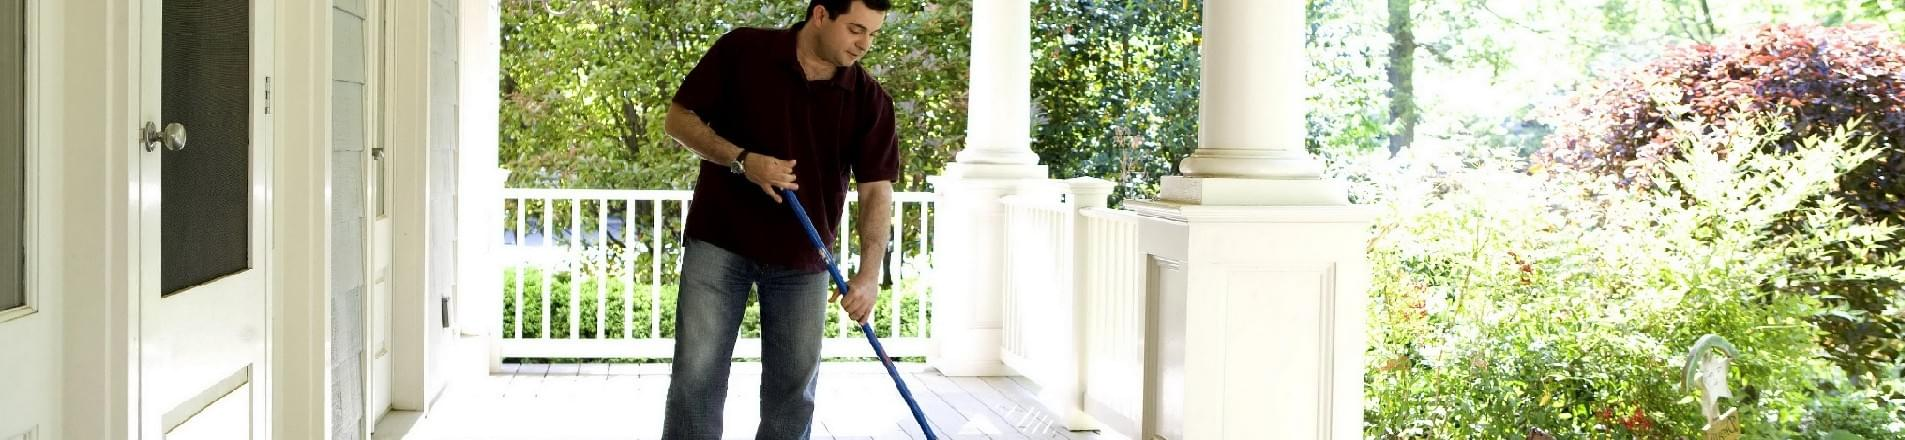 Have You Considered A Career In Cleaning?